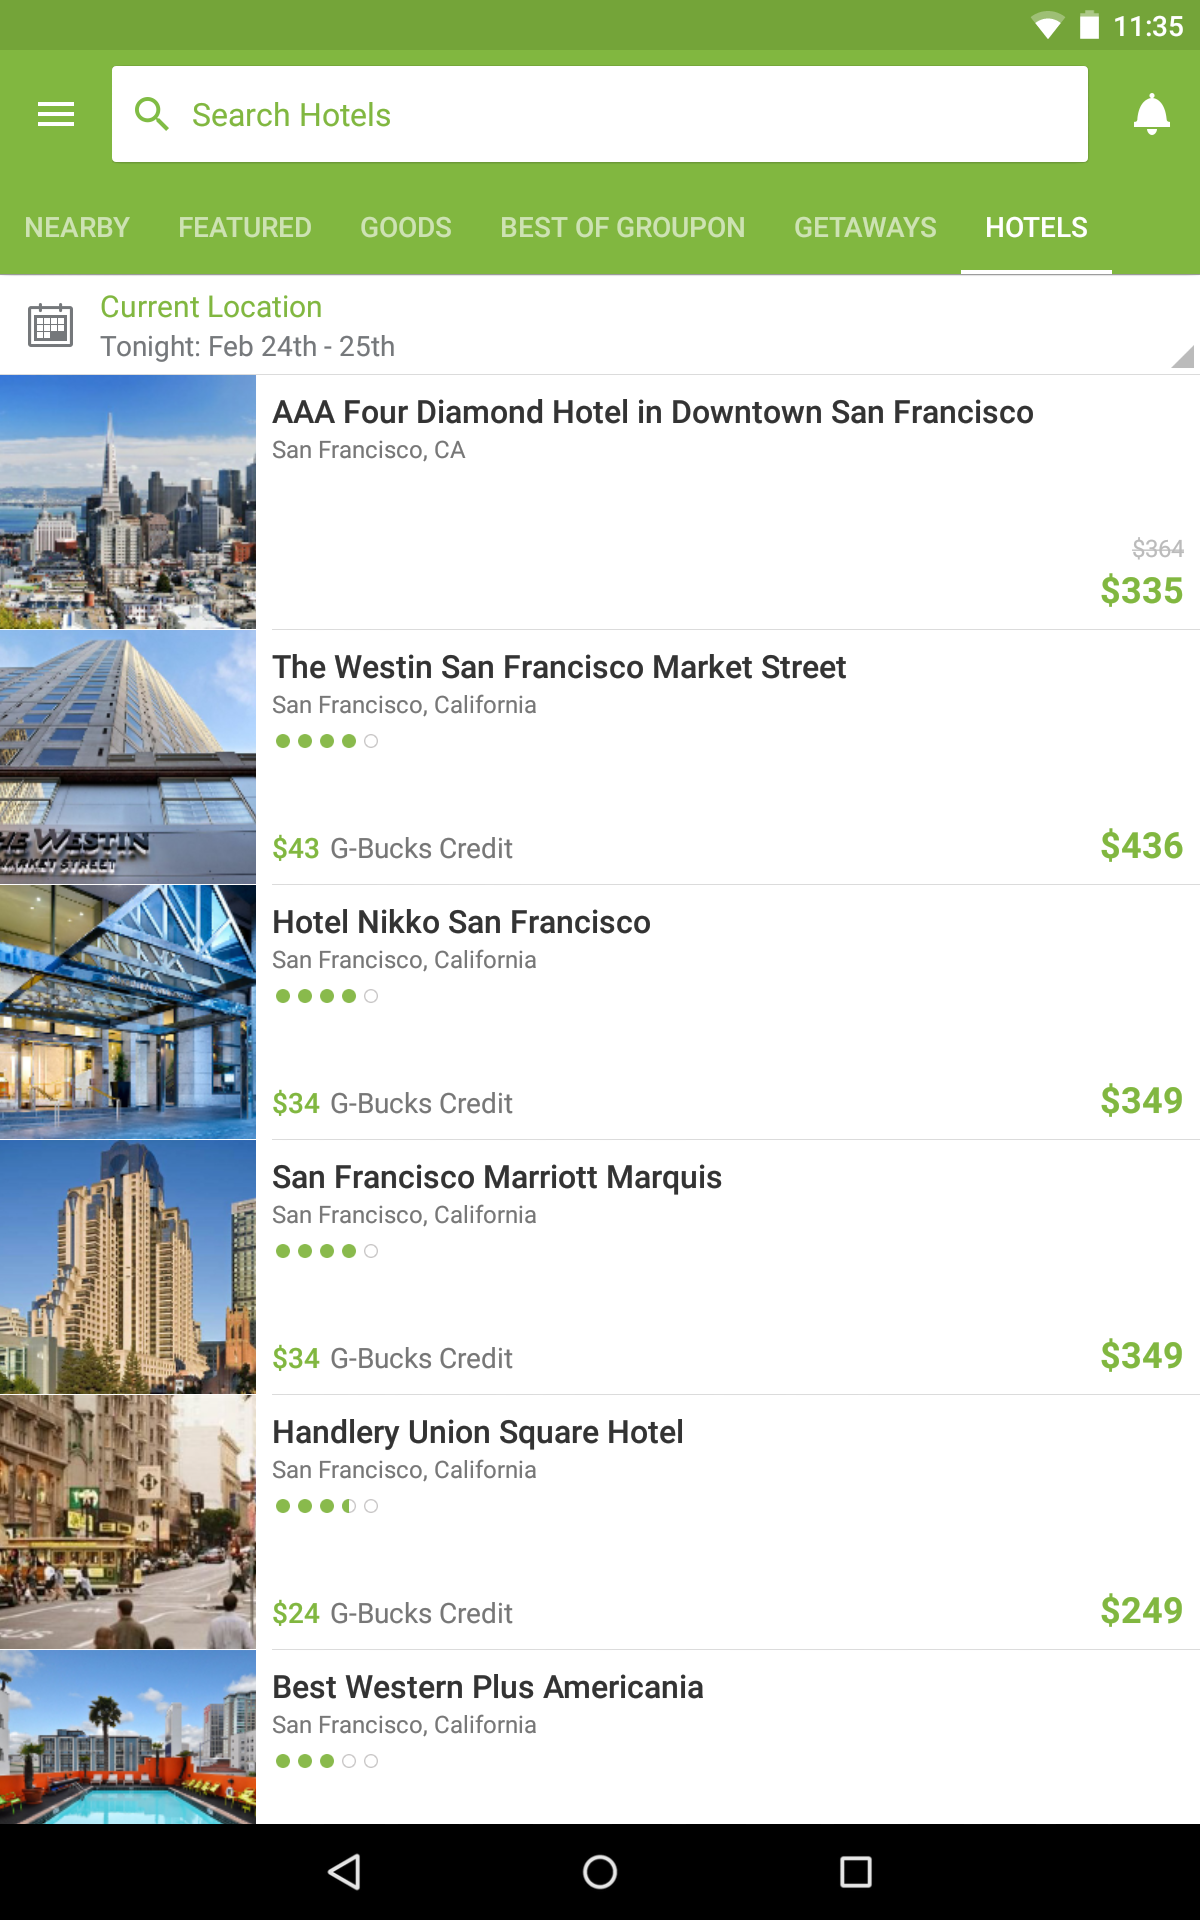 Groupon - Shop Deals & Coupons screenshot #7